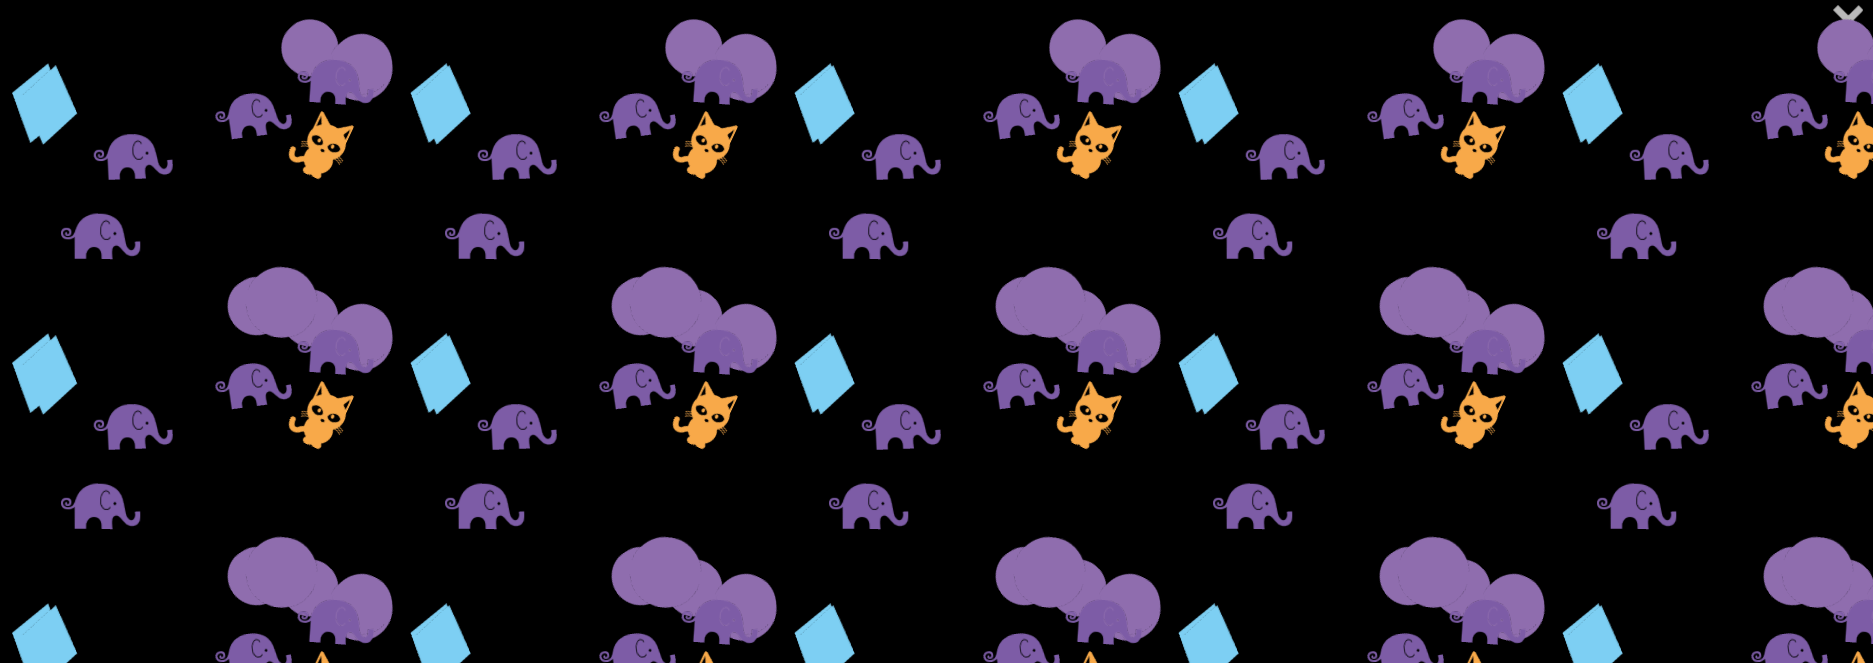 Example of pattern created with Forma